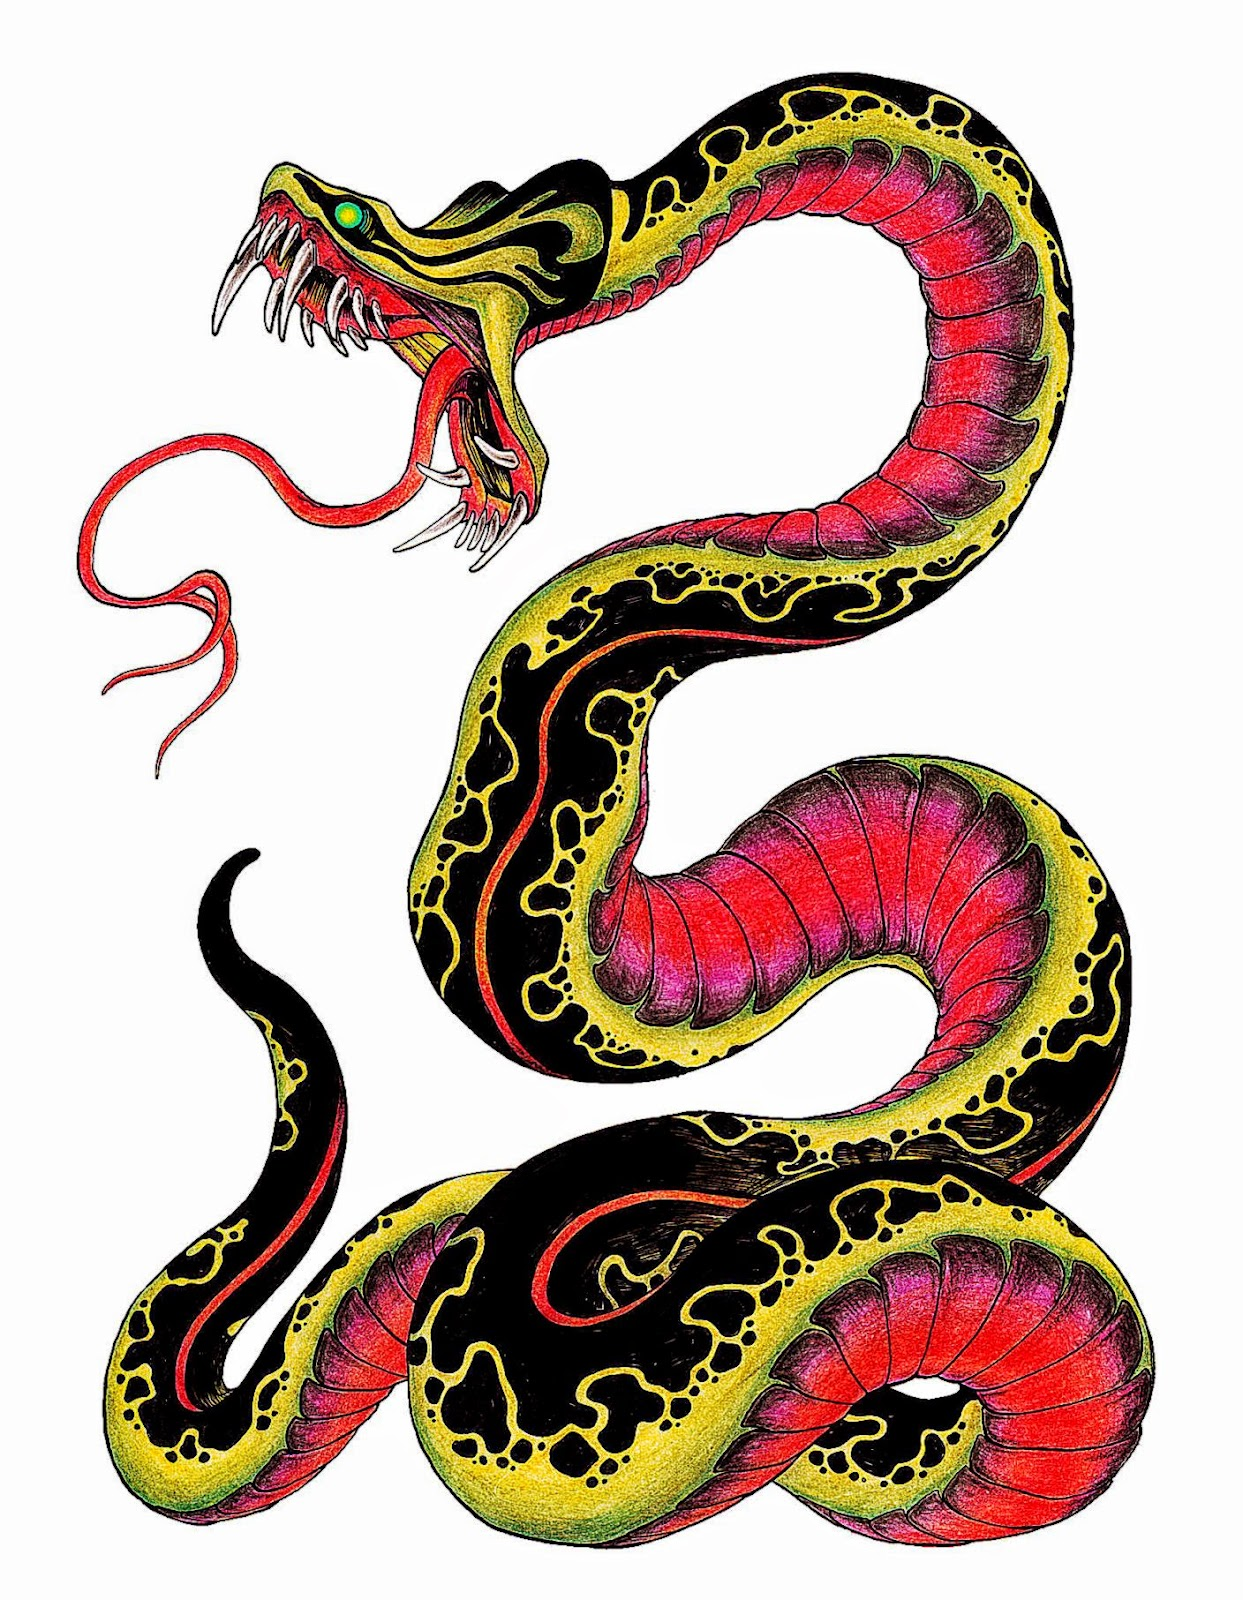 Snake tattoo design by burke5 on DeviantArt